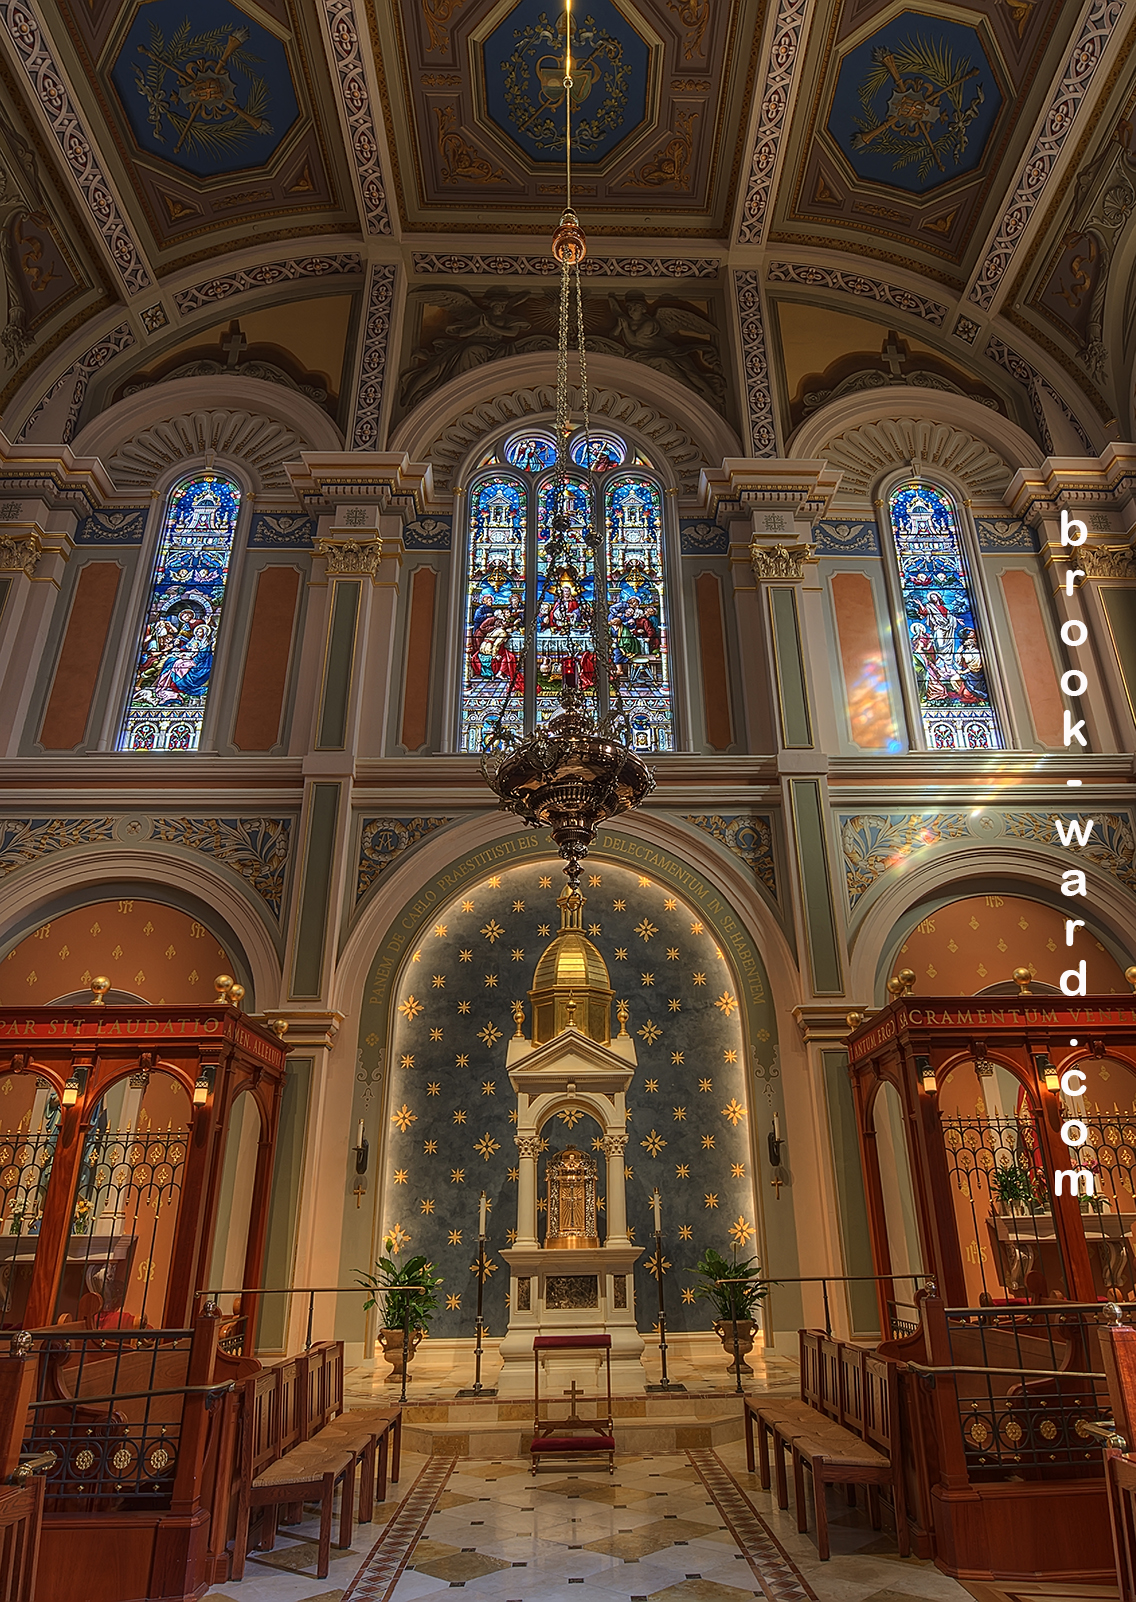 Cathedral Blessed Sacrament - iPhone.jpg